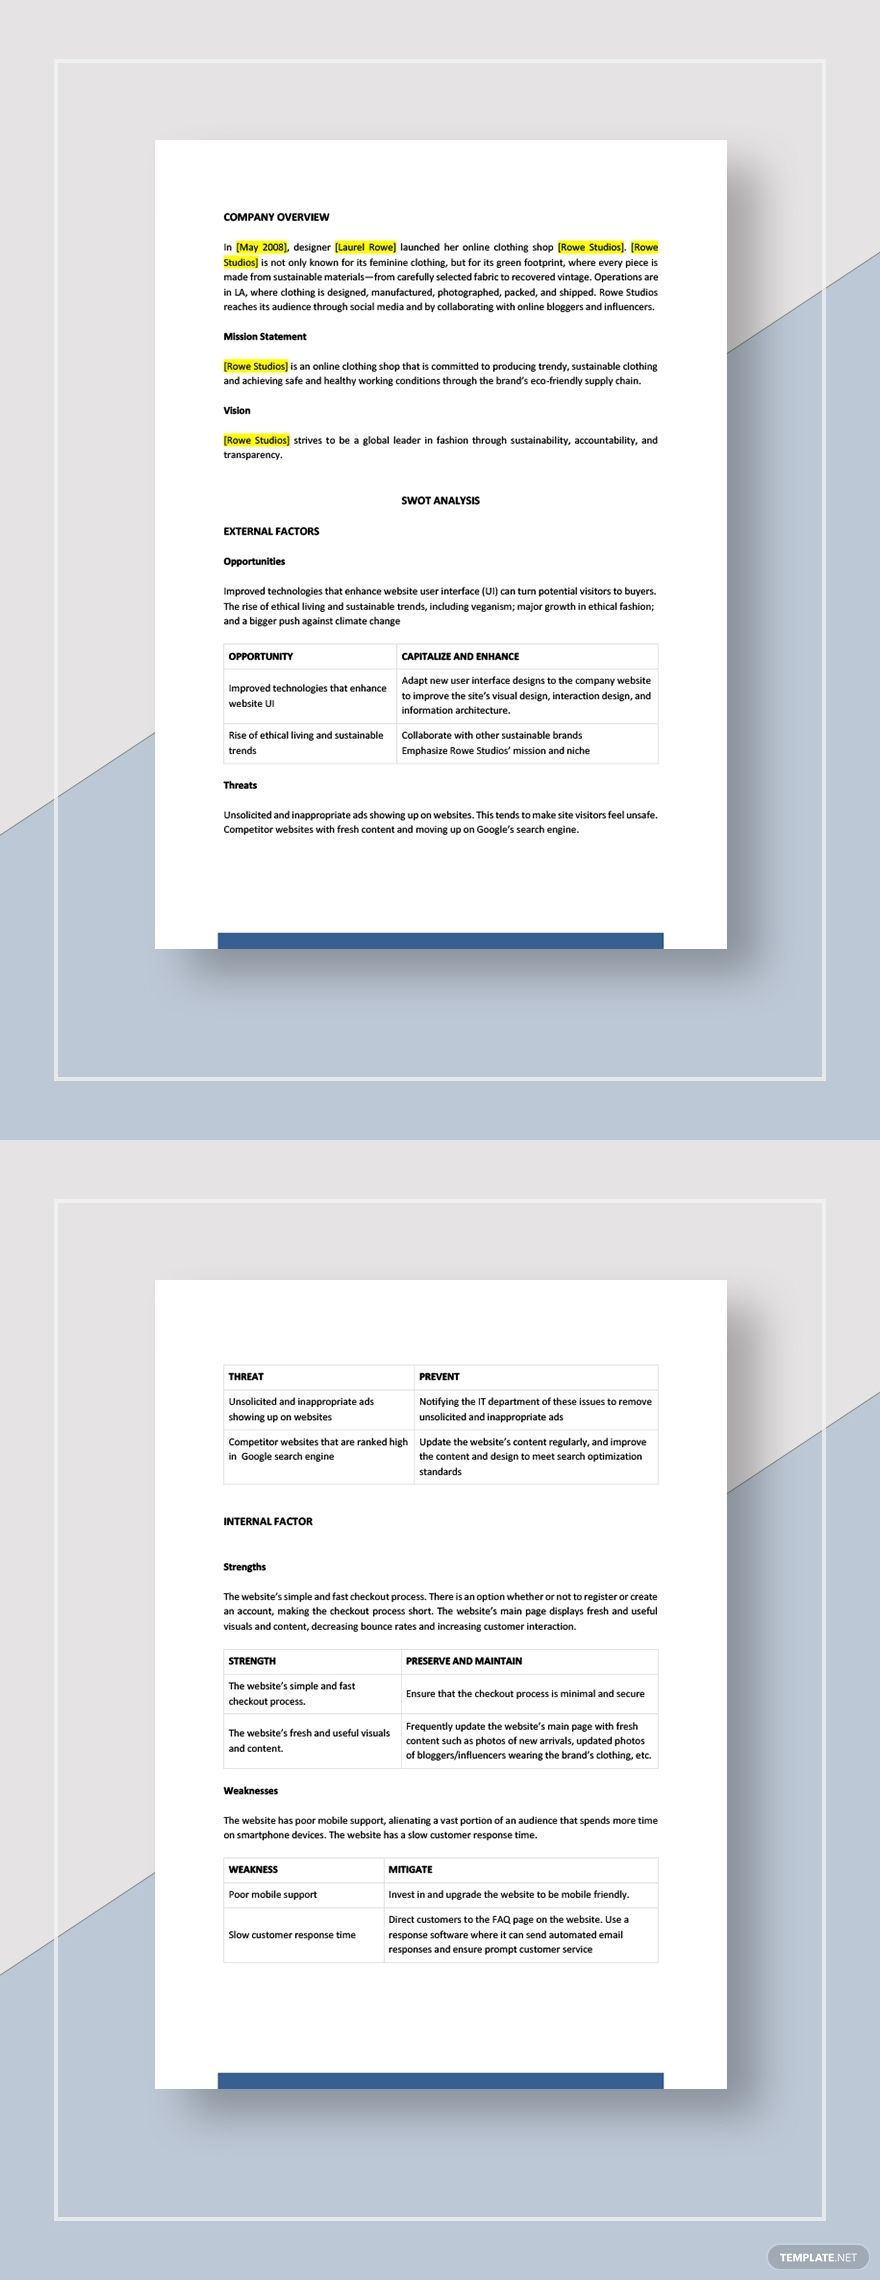 Website swot analysis template Word (DOC) Apple (MAC